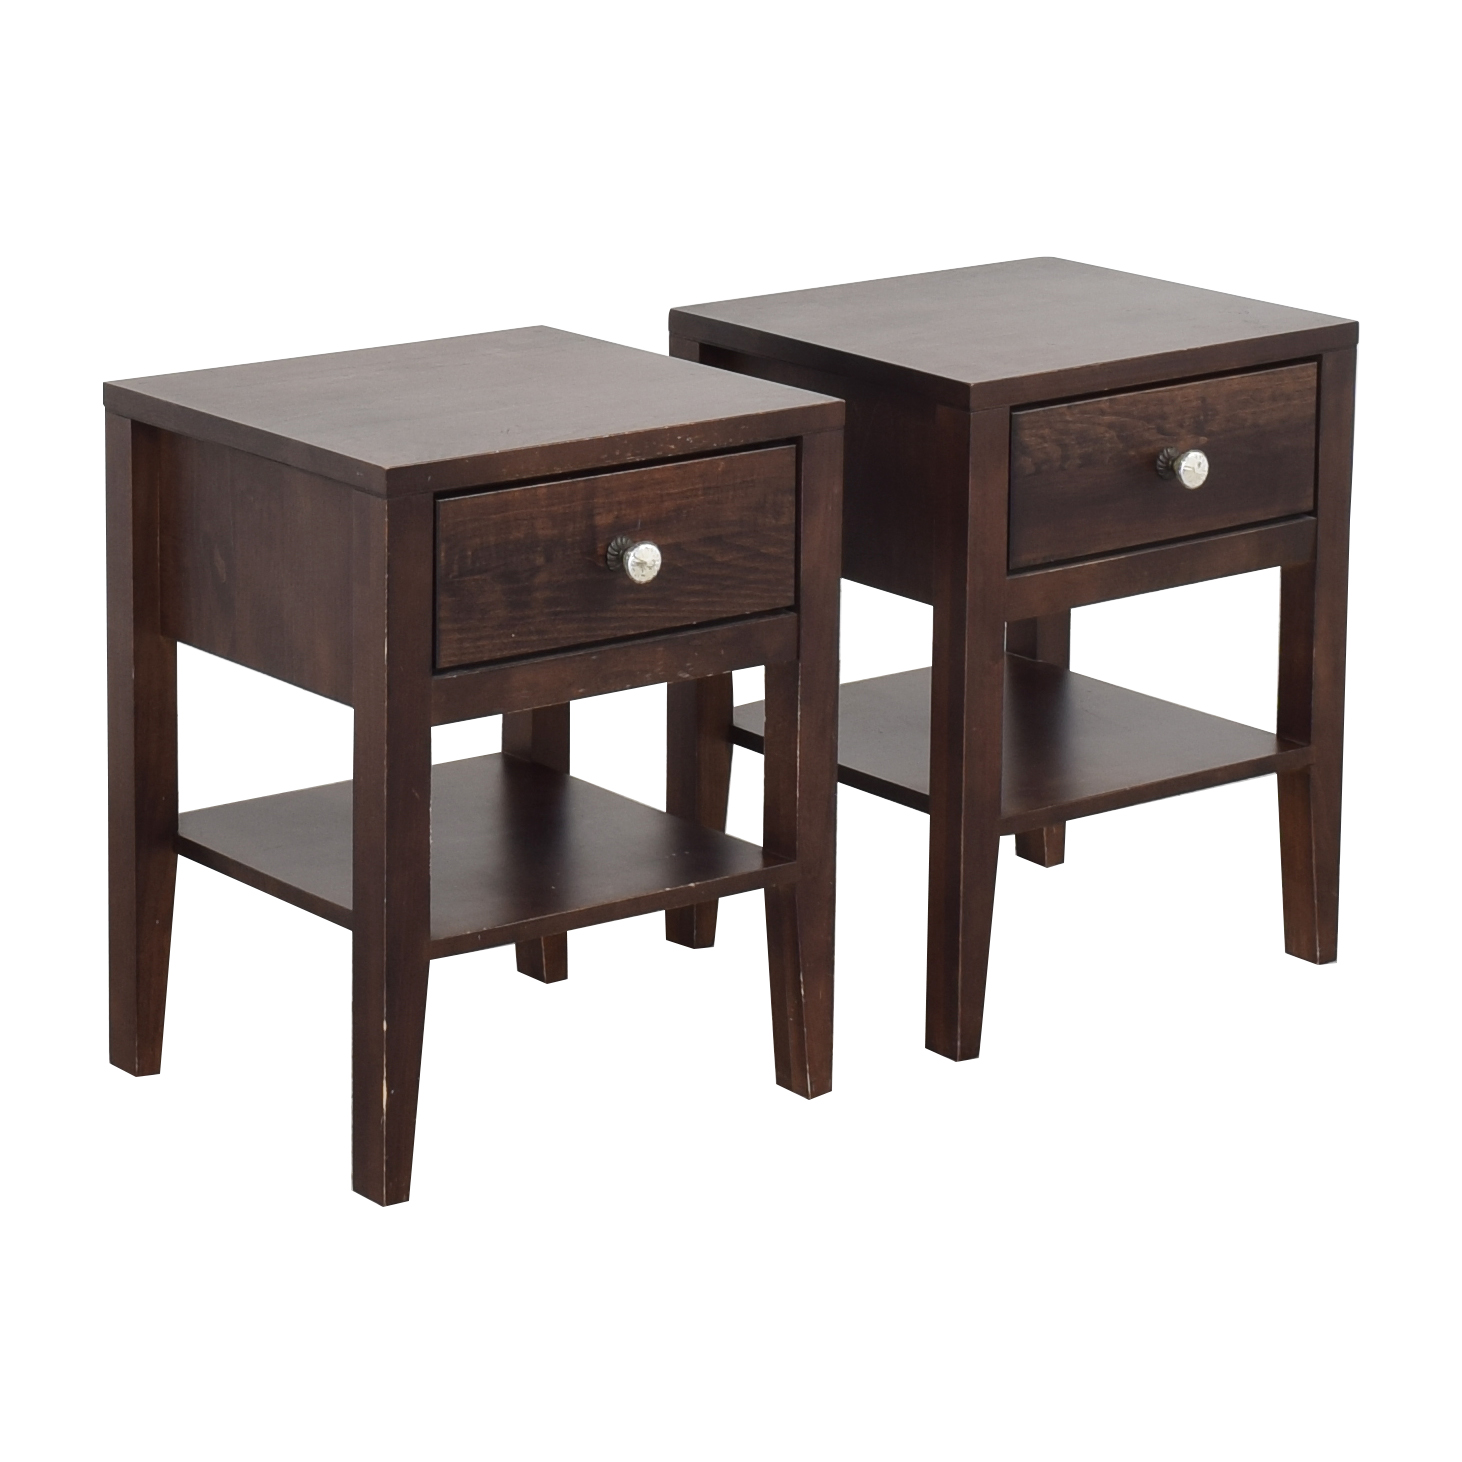 Room & Board Room & Board Calvin Single-Drawer End Tables second hand